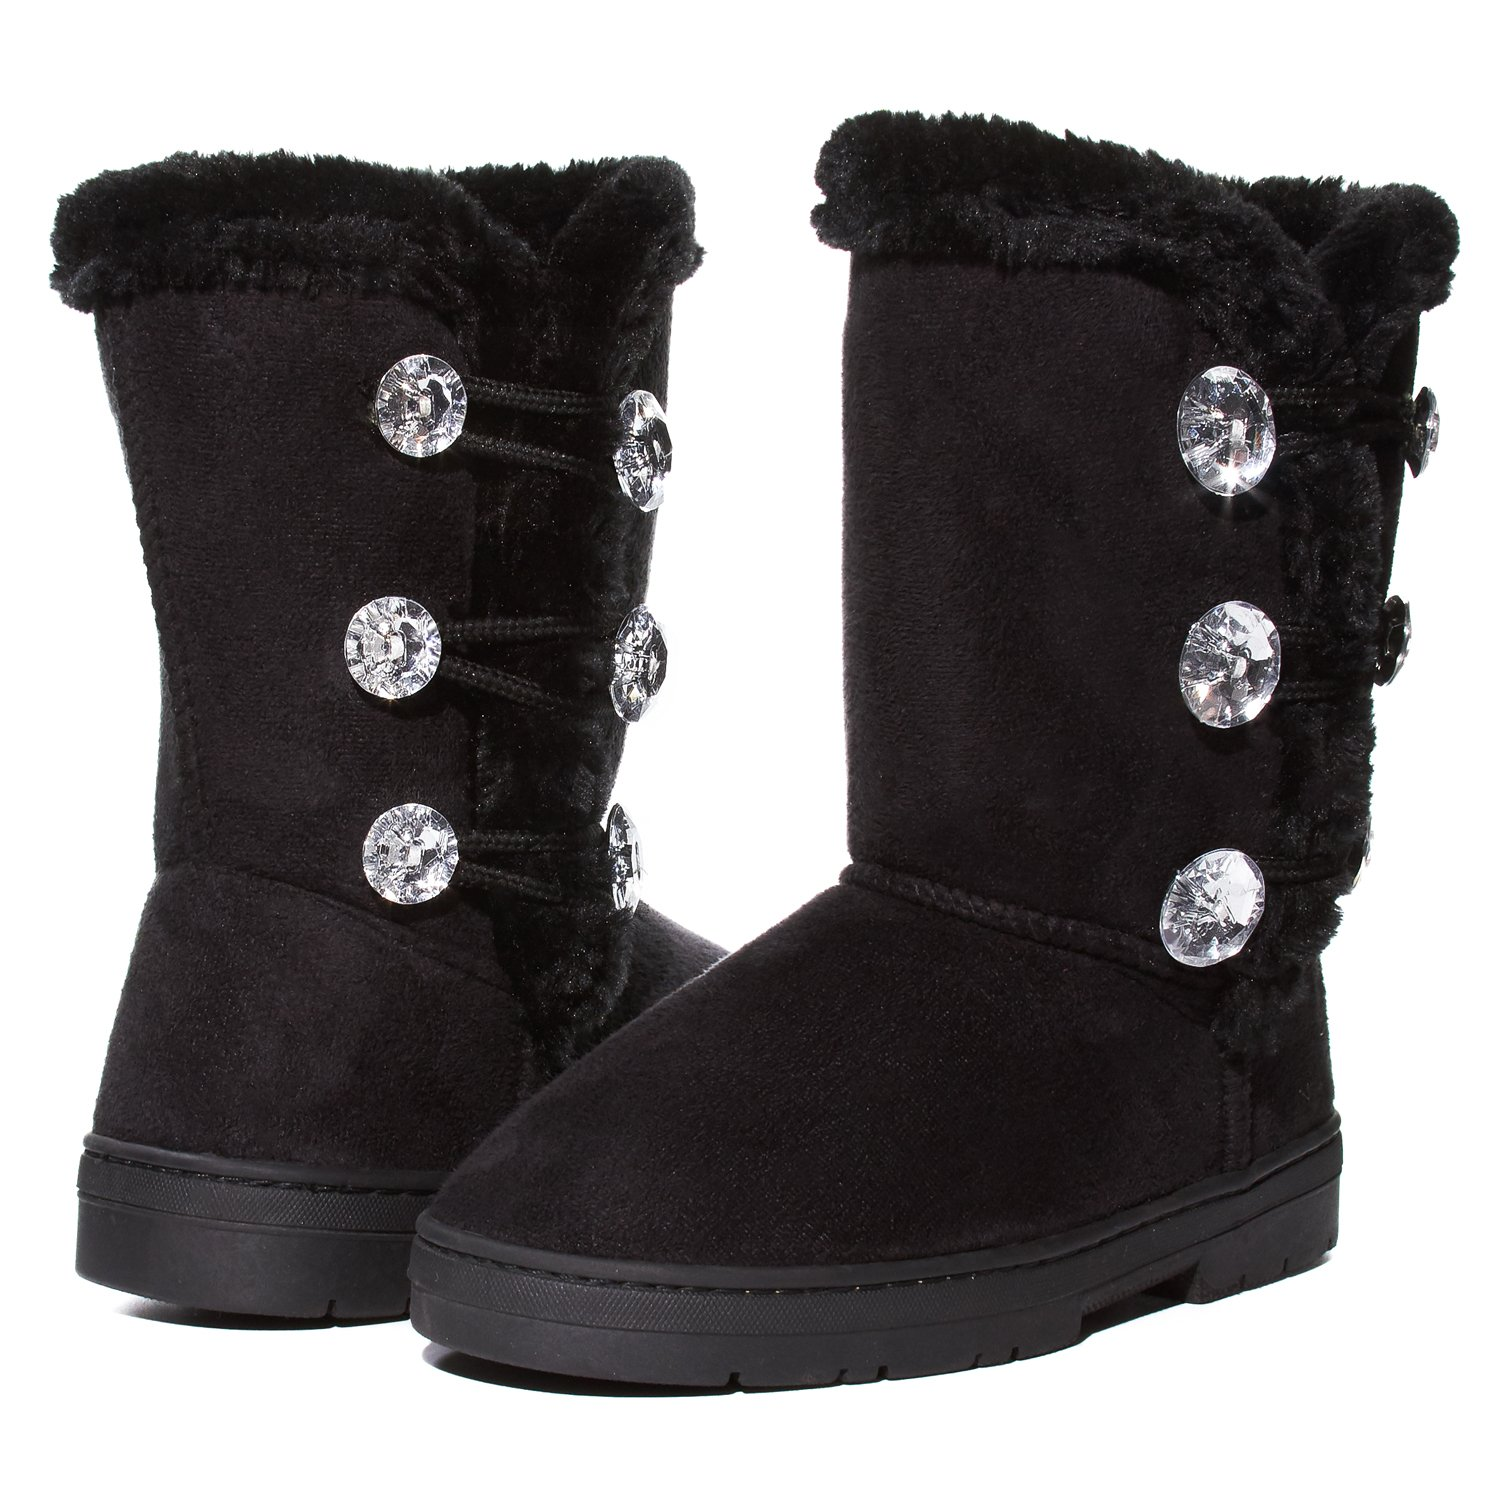 Girls Winter Boots Size 11 with Sparkling Rhinestones and Fur Trims Shoes Black/Gold